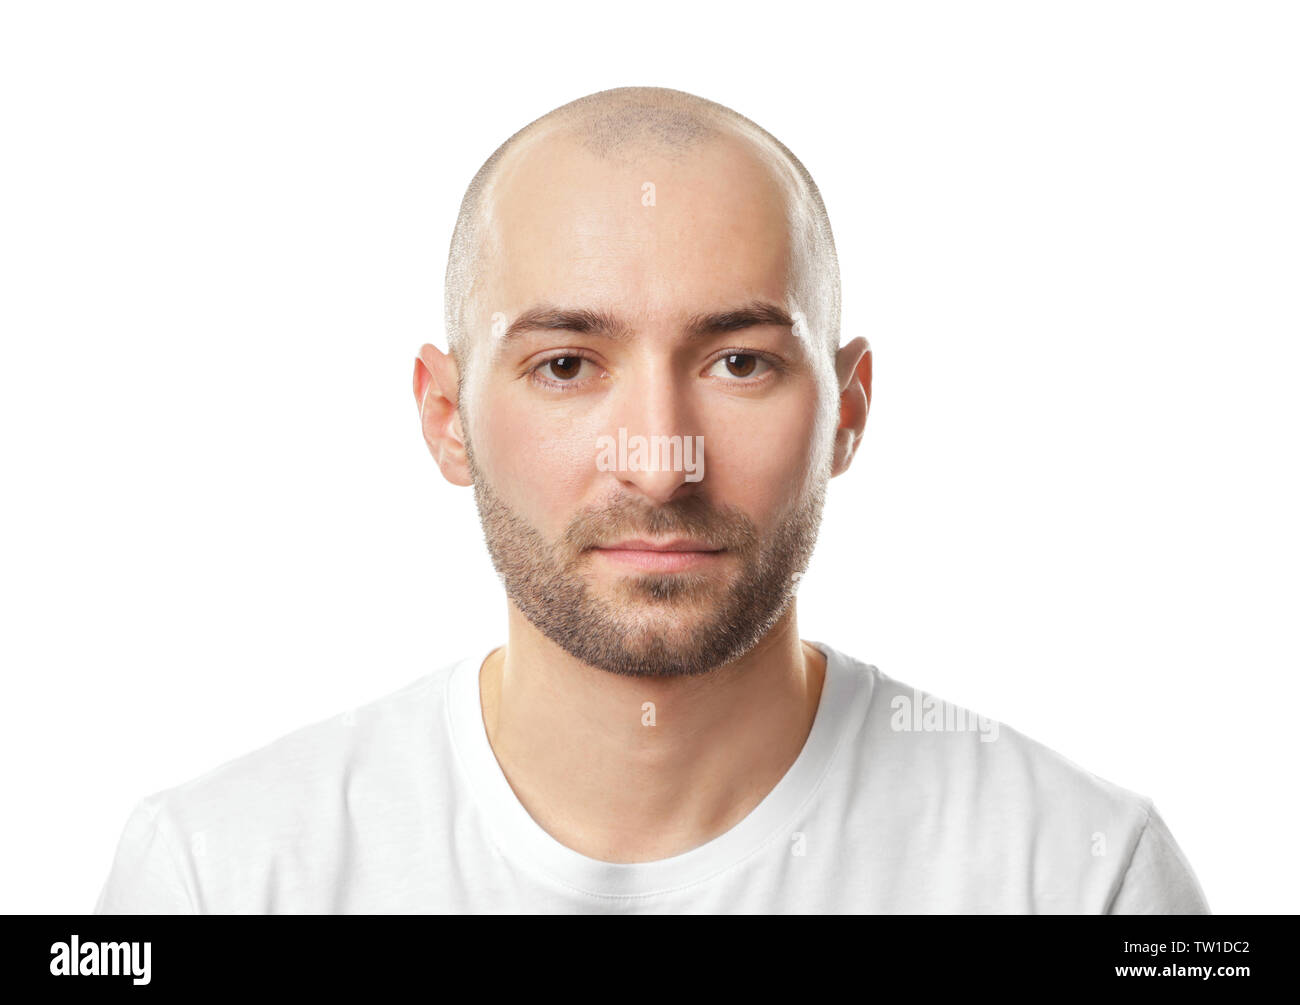 When do young to what balding Balding Causes,